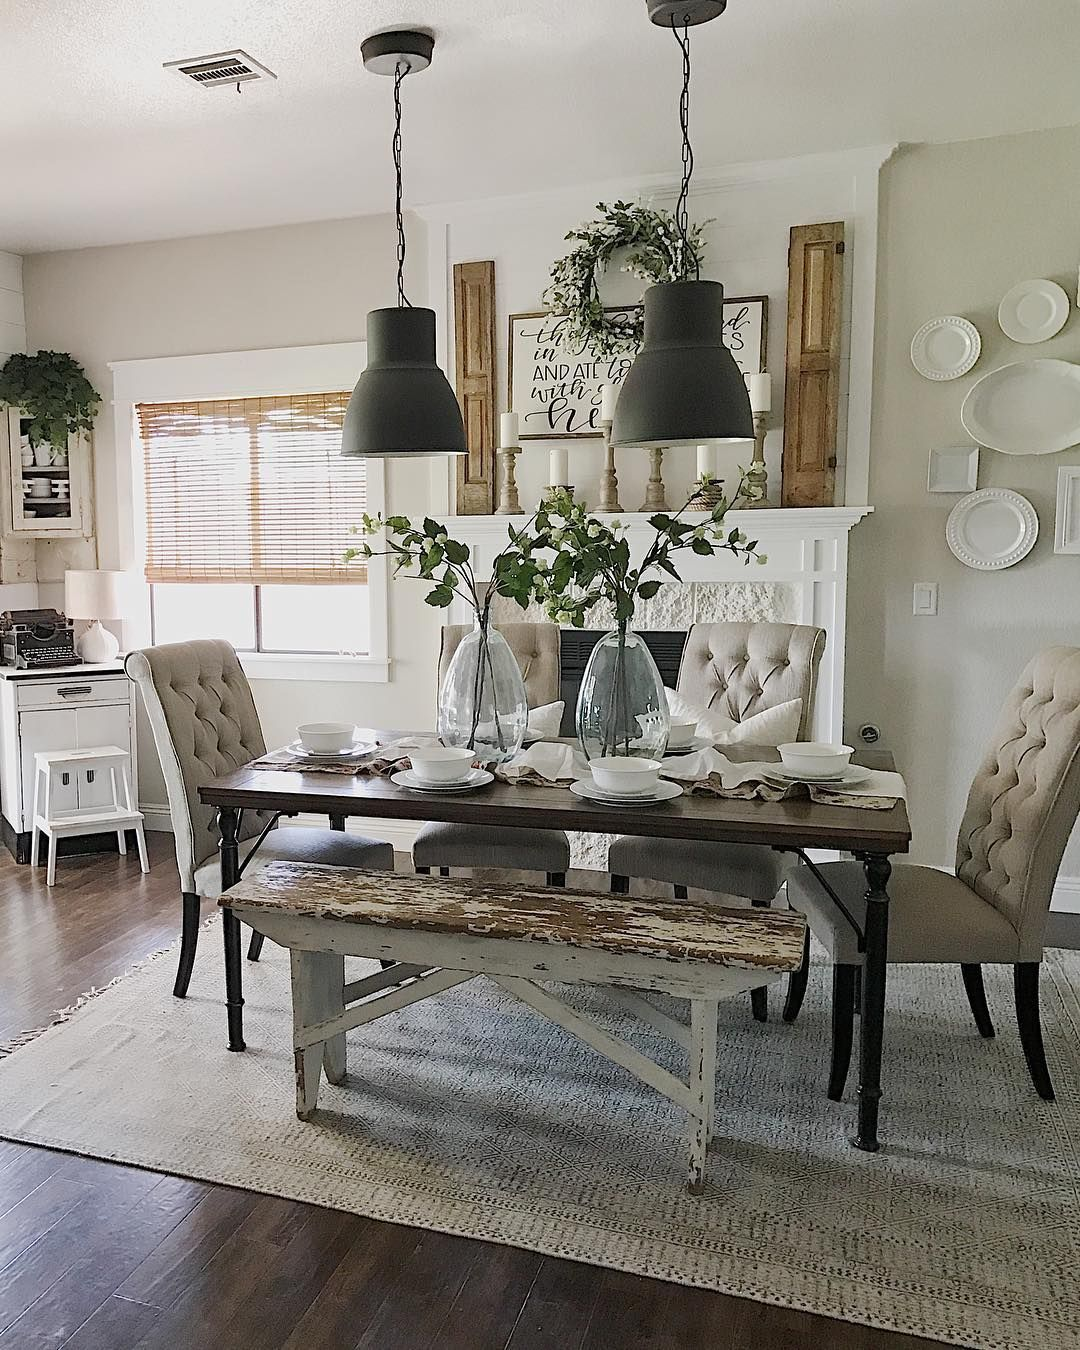 55 Dining Room Wall Decor Ideas: 49 Modern Farmhouse Dining Room Decorating Ideas In 2020